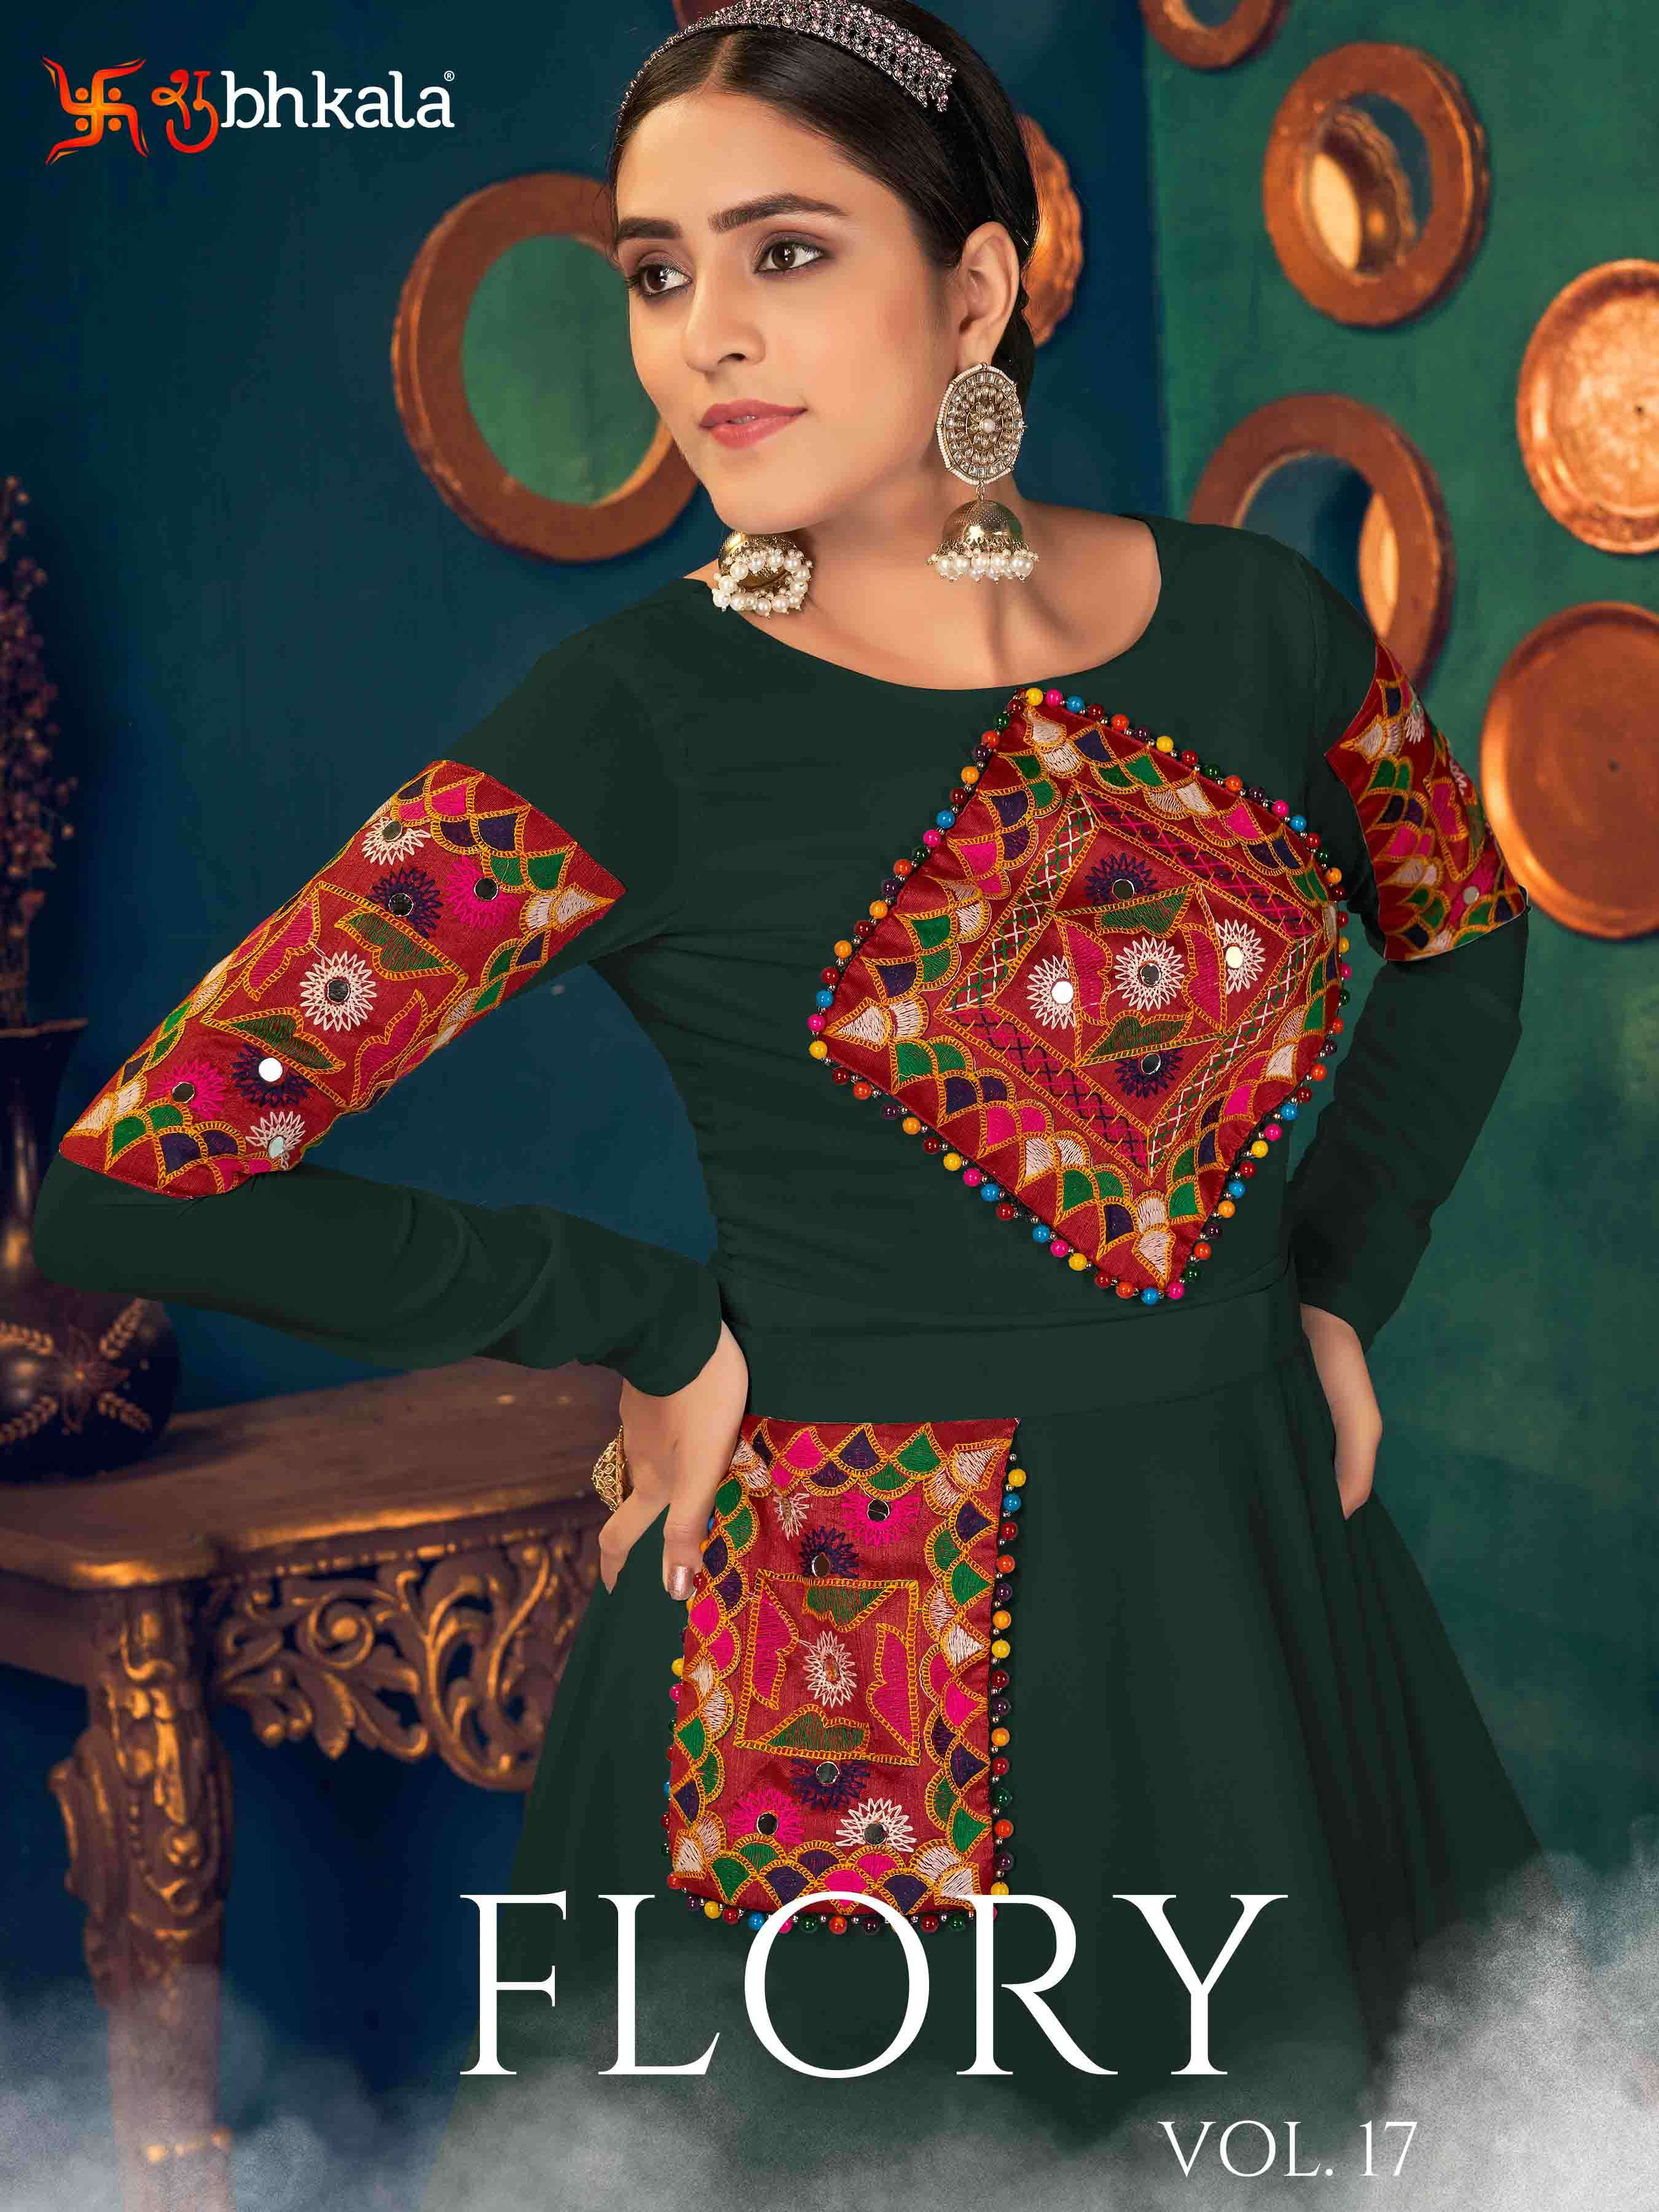 Product By Shubhkala Flory Vol. 17 Festival Style Long Anarkali Style Gown Collection